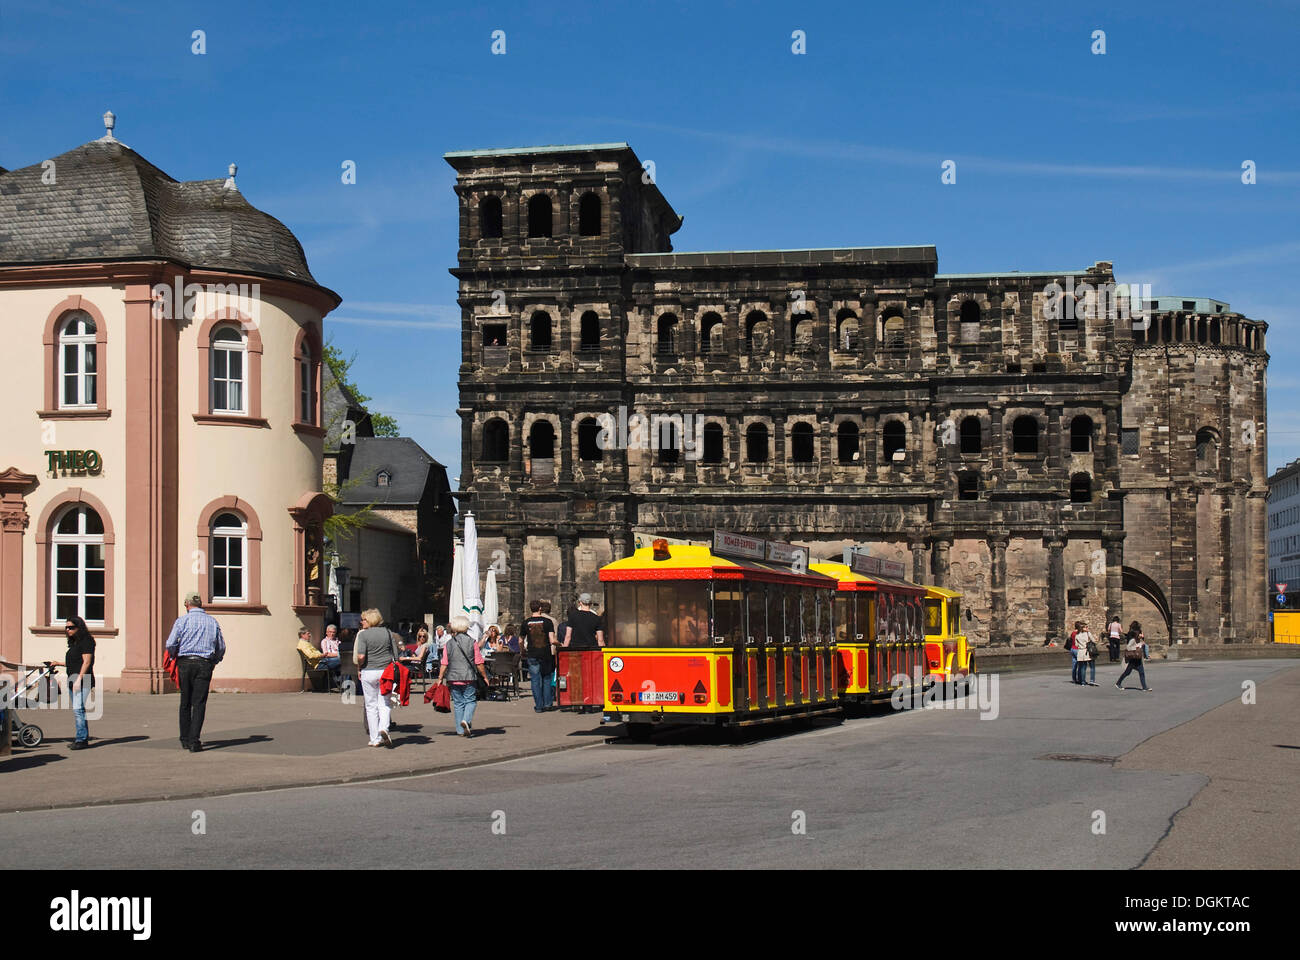 Porta Nigra, landmark of Trier, UNESCO World Heritage Site, Roemer Express tourist train at front, Trier, Rhineland-Palatinate - Stock Image